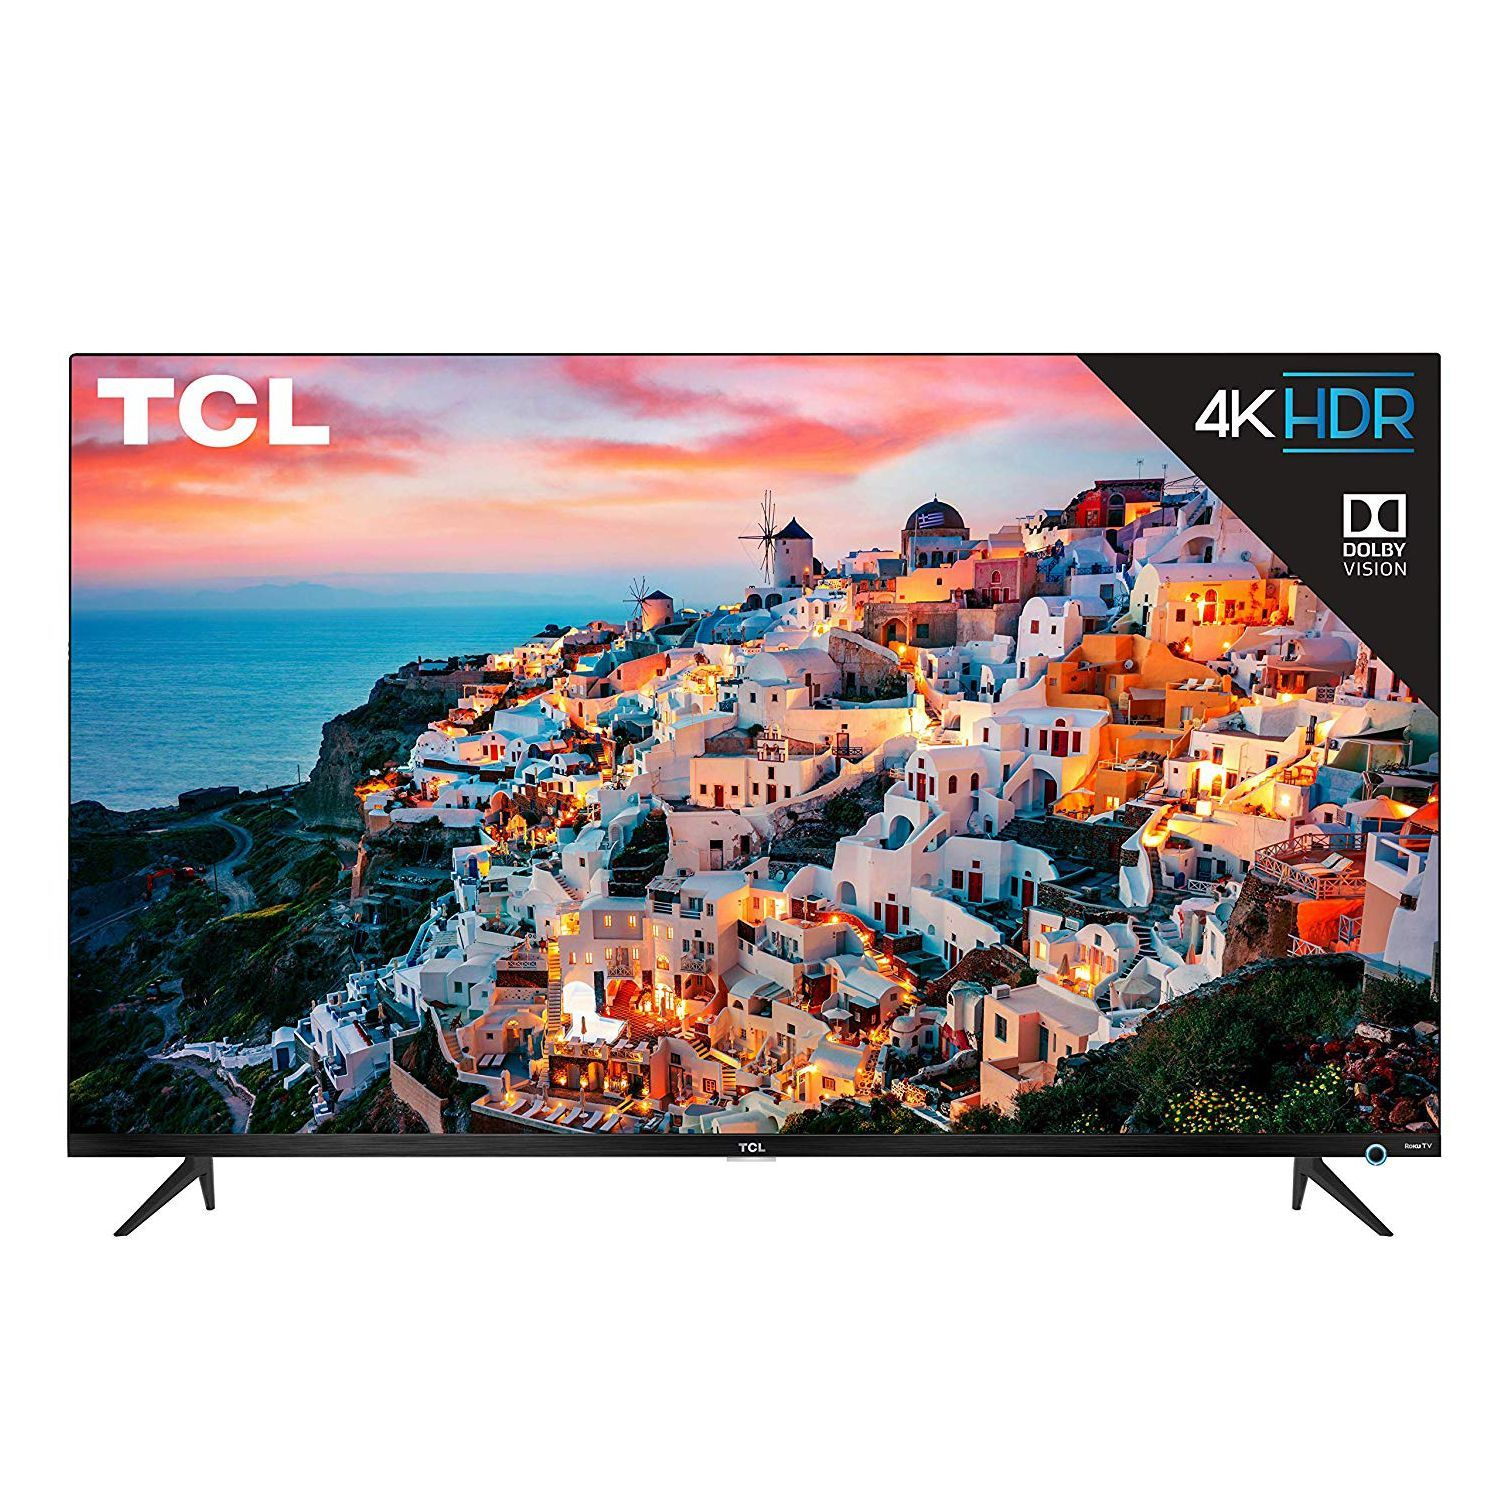 Tv Board Pinterest Tcl 5 Series Smart 4k Tv 55 Inch